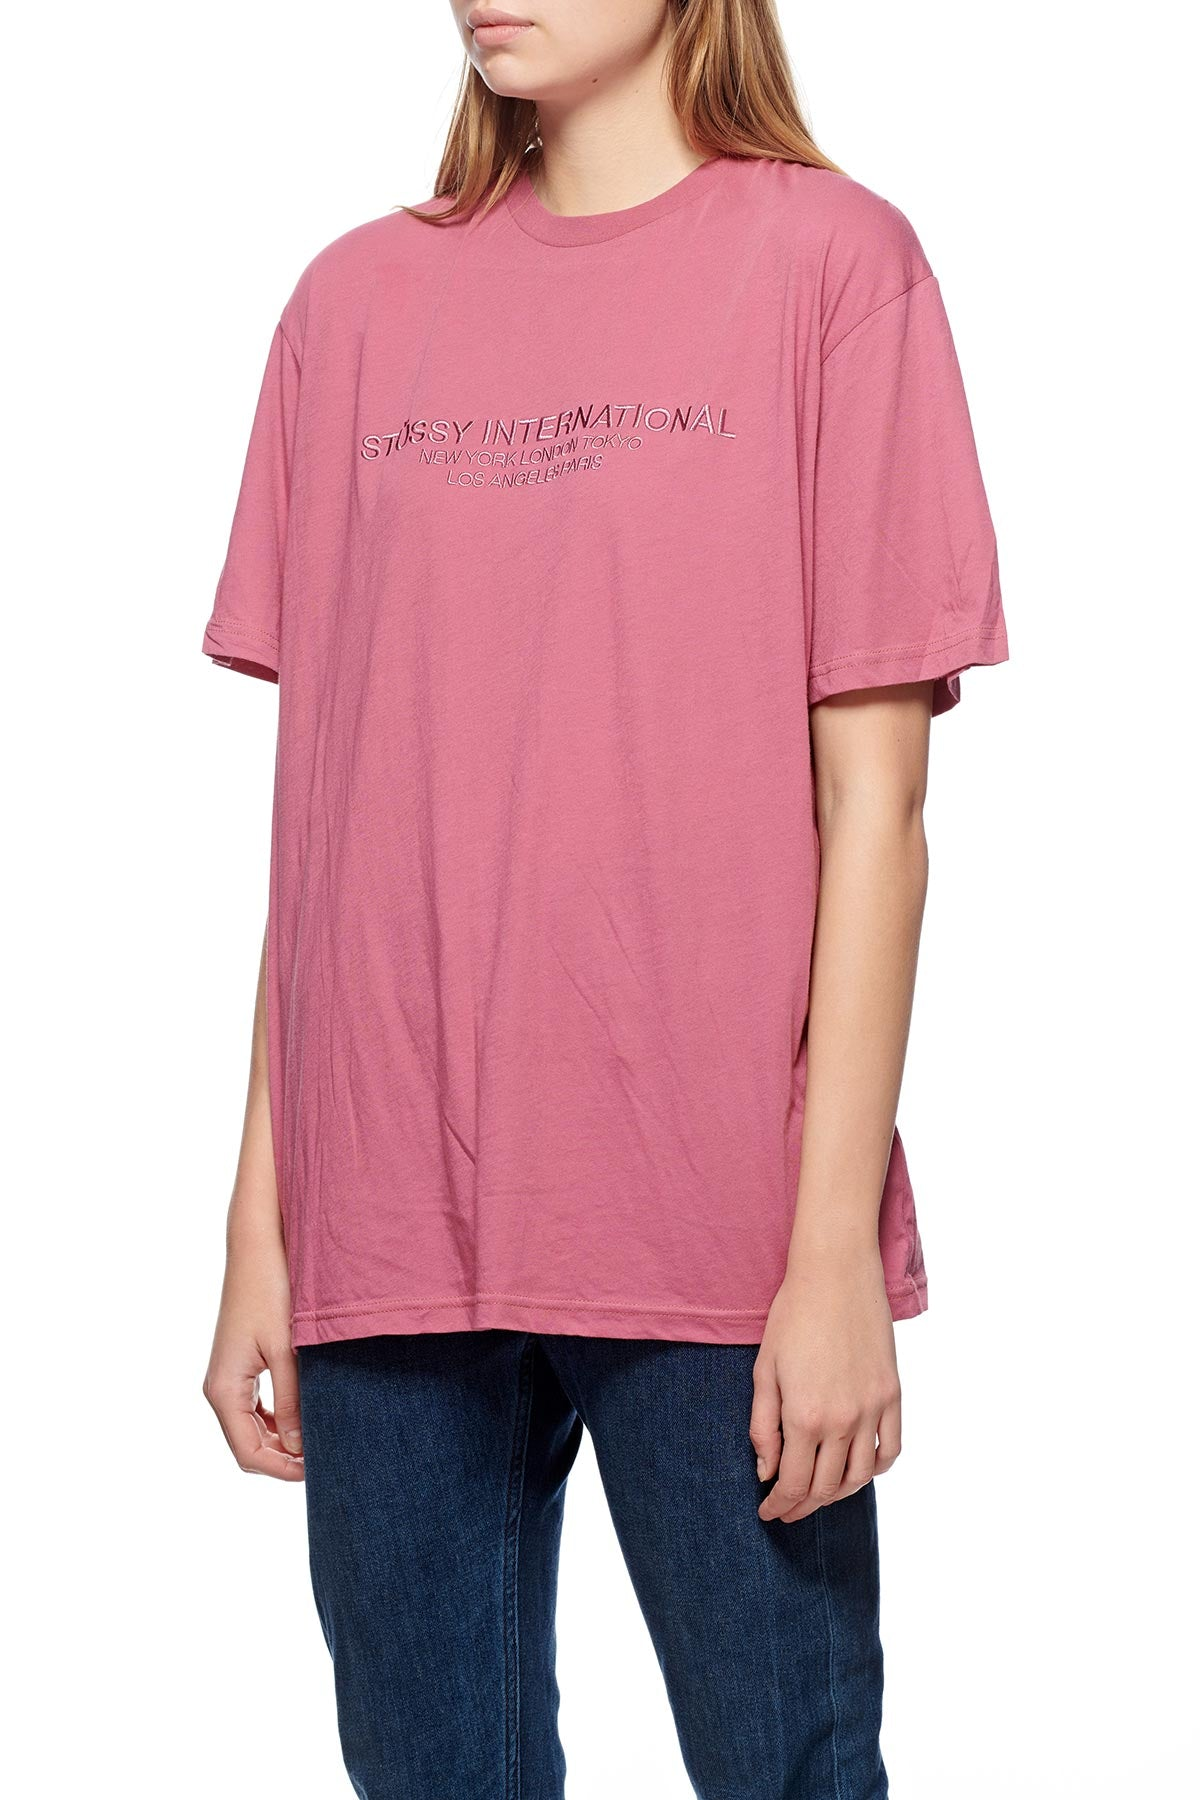 Cities Boyfriend Tee - R8gzwear